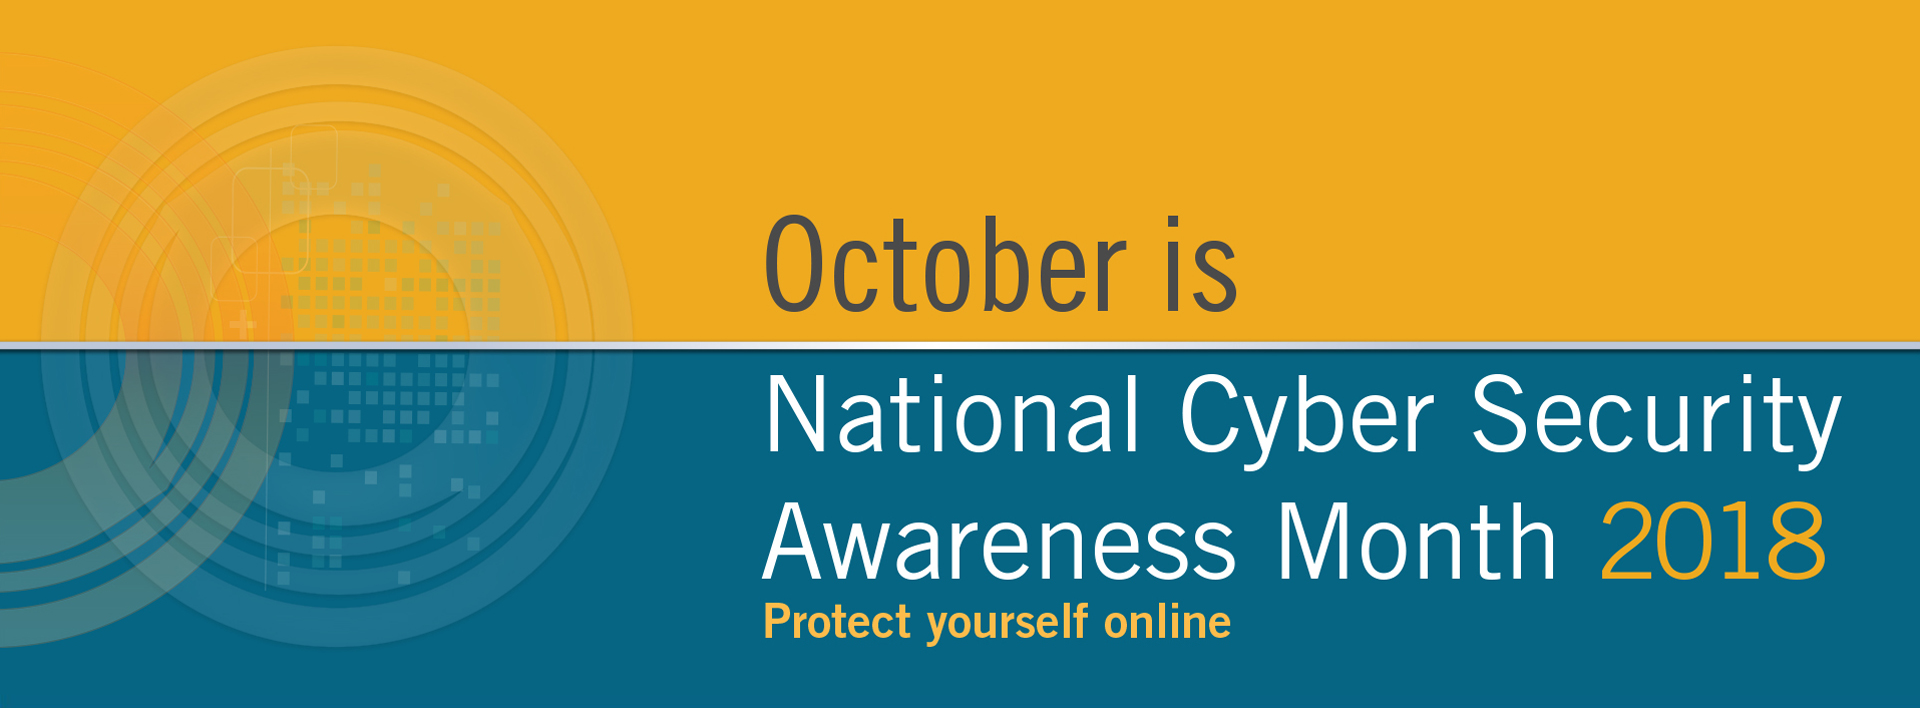 October is National Cyber Security Awareness Month 2018 banner